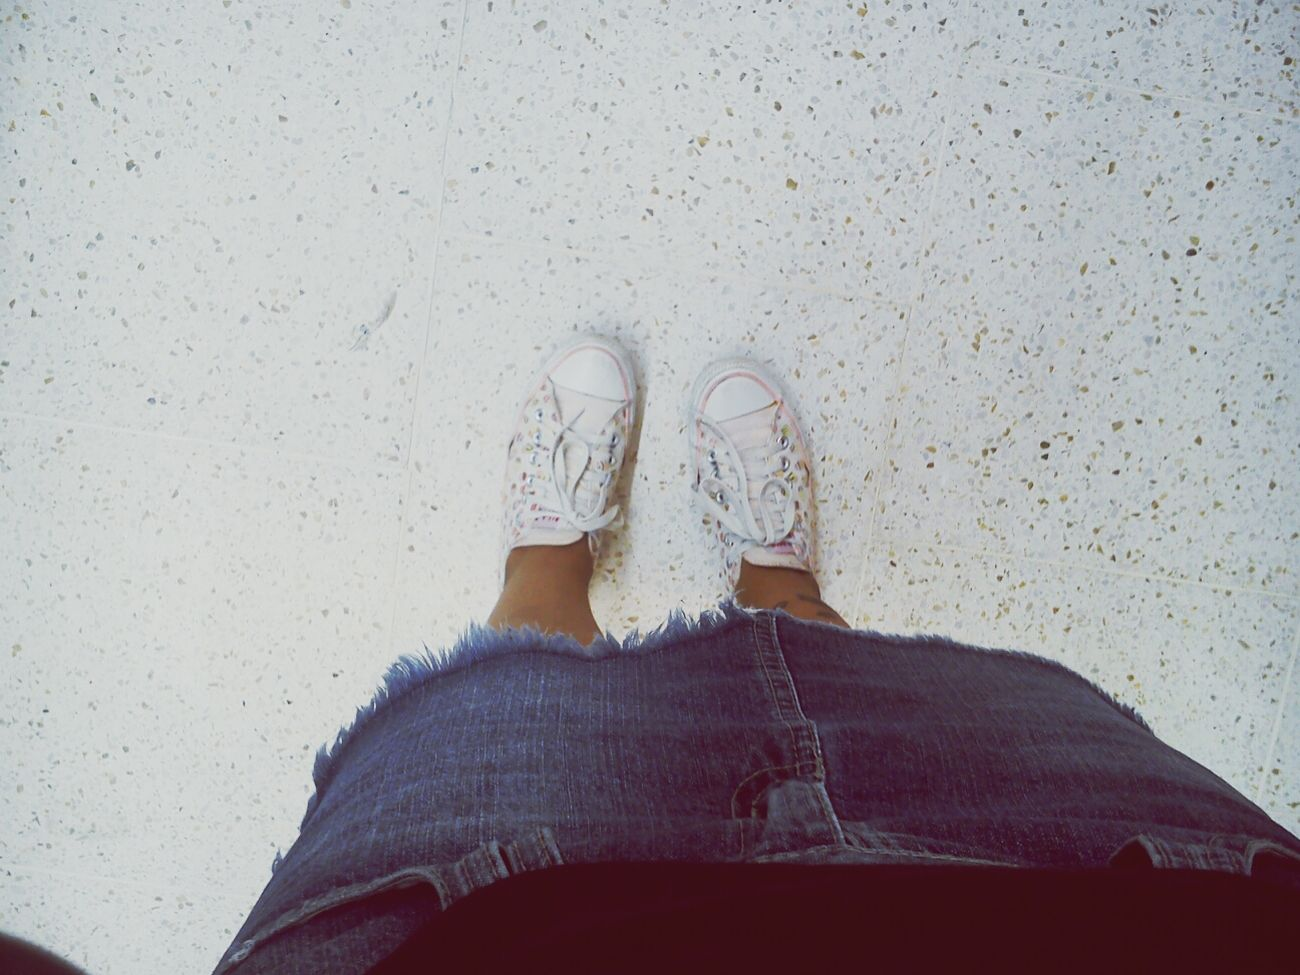 -.- Taking Photos Eyemgirl#converseallstars Boring